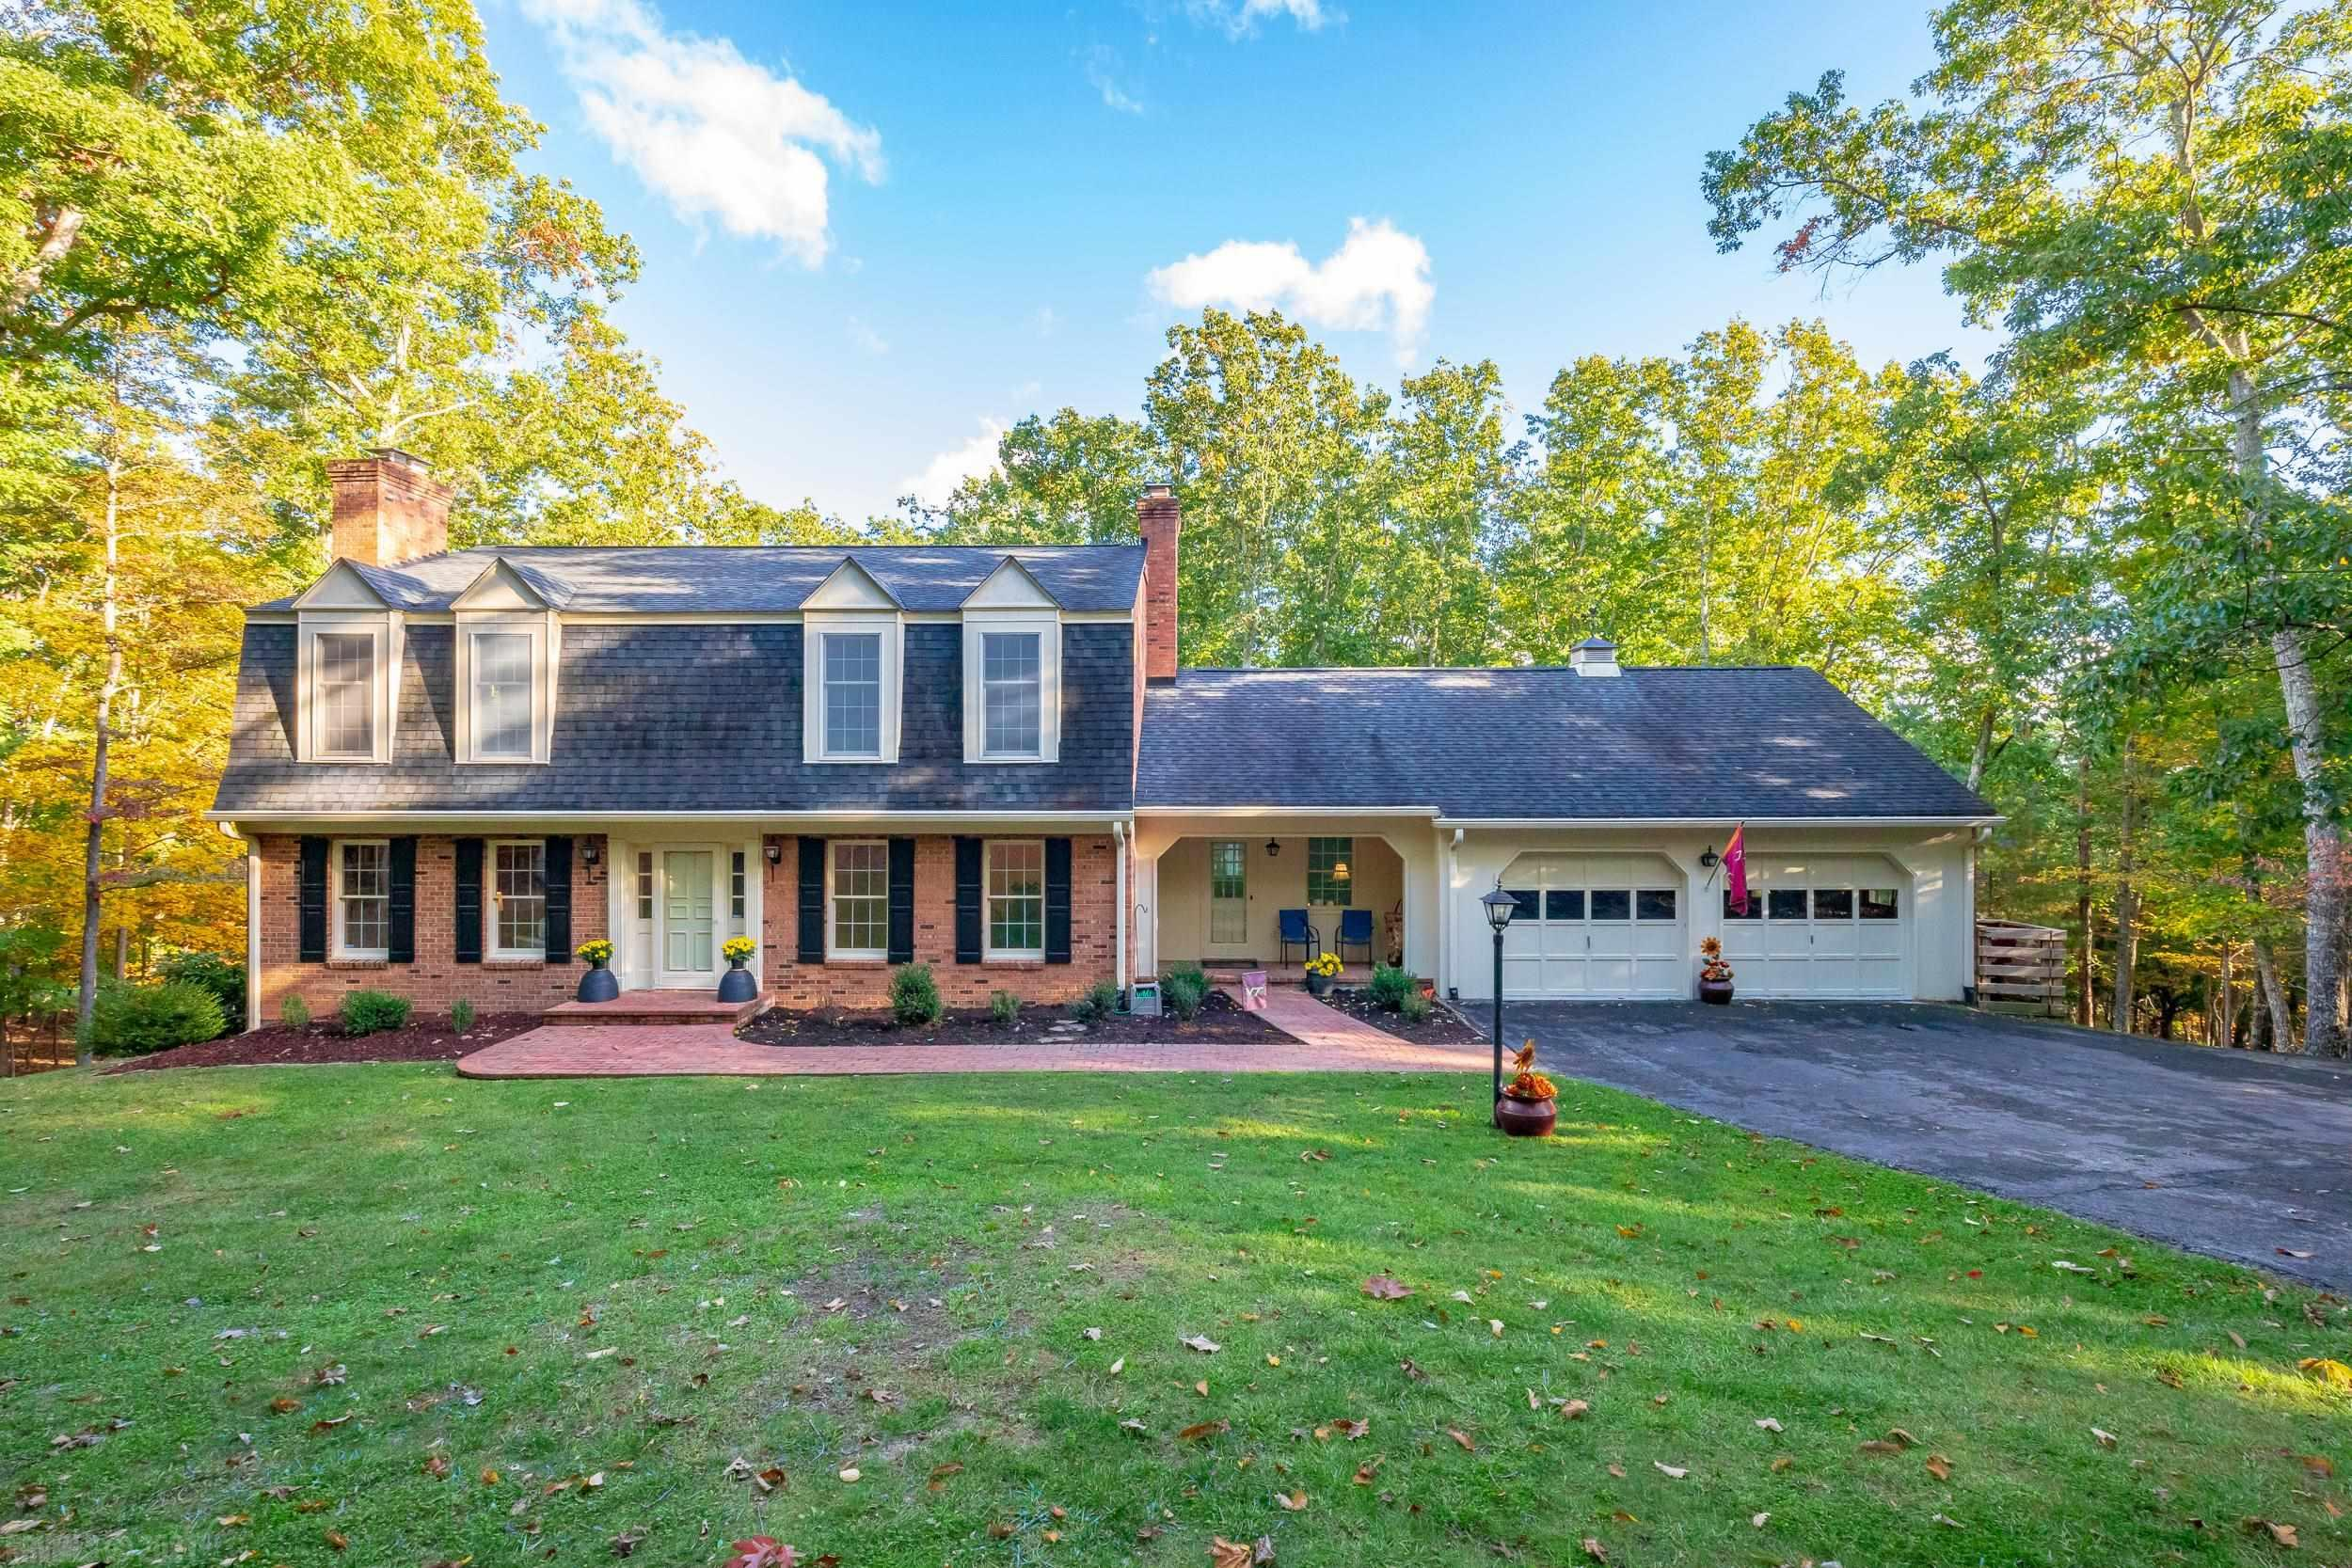 Beautifully updated home in Laurel Ridge just minutes from VA Tech, US-460 and Downtown Blacksburg. Nestled back in the mountains you have over 3 acres of land with an abundance of mature trees offering plenty of privacy. The current owners have updated a majority of the home including all the bathrooms, kitchen, appliances, laundry room, living room, flooring, water heater and had the septic pumped this year. According to the past owners the 2 zone HVAC system was replaced in 2016 and the roof was replaced 2008-2009. There are three fireplaces; wood stove in family room, fireplace in living room and basement. There is a bedroom and full bathroom on the main level with the rest of the bedrooms/bathrooms upstairs. Laundry room is on the main level with large utility sink, extra refrigerator and cabinet space. Large back deck allows you to enjoy mother nature and can be accessed from the dutch door in the kitchen or from the exterior stairs. Full basement with workshop and back patio.